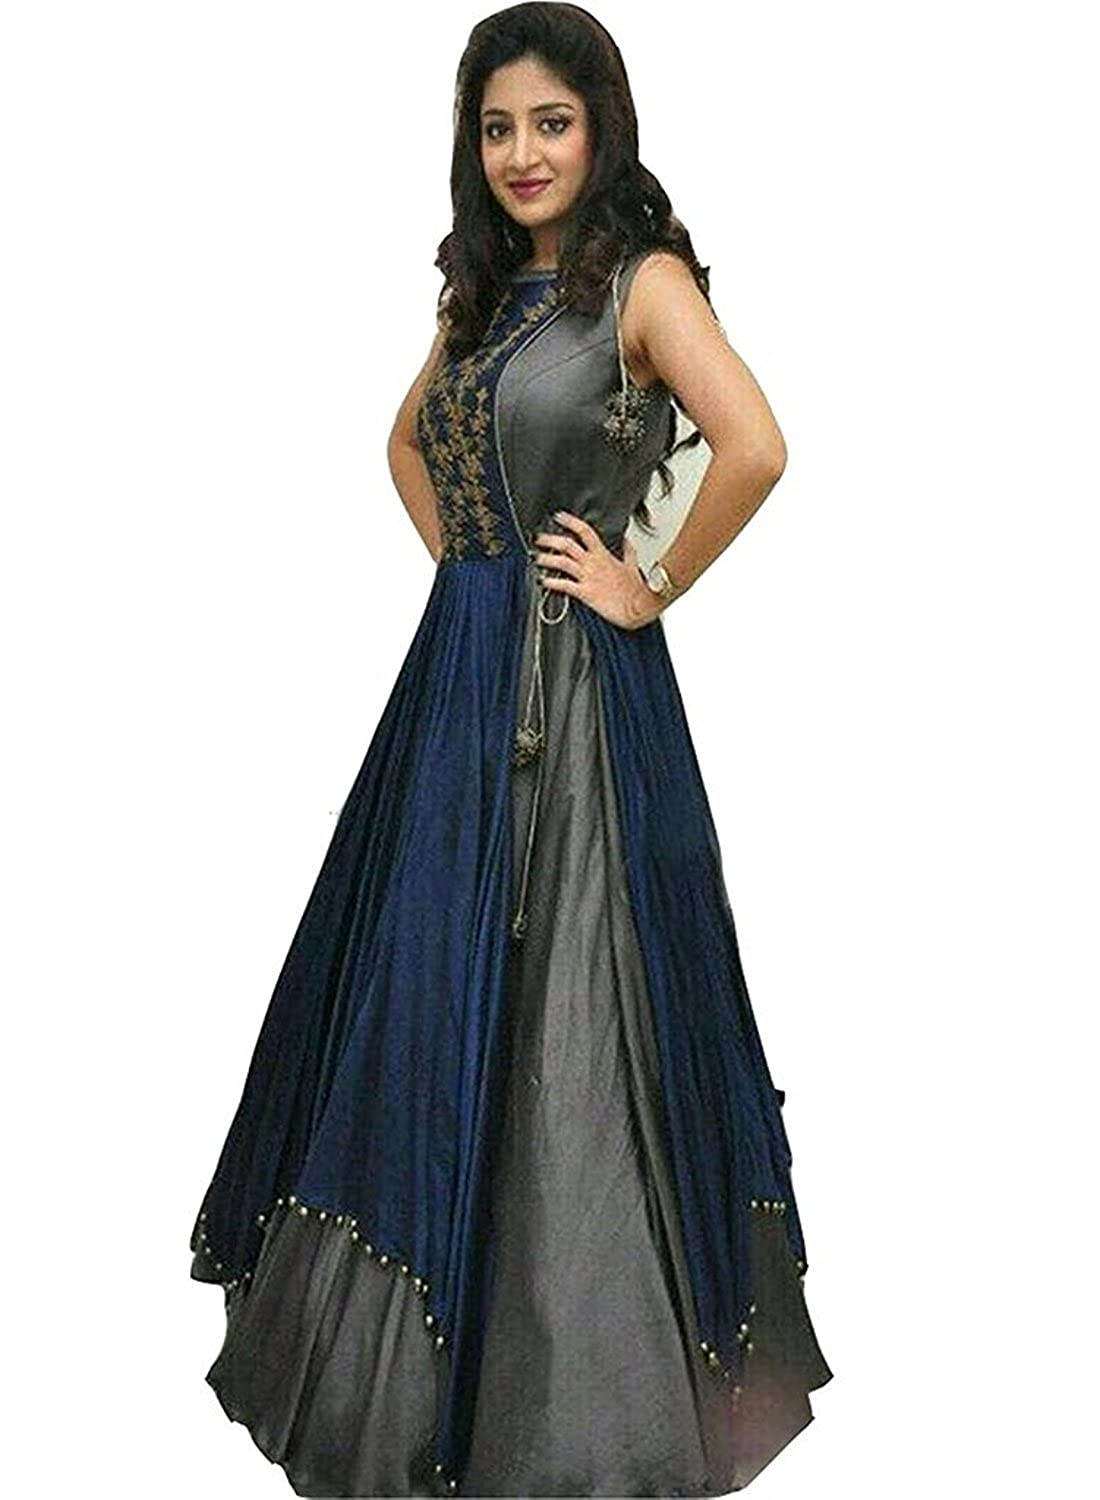 Buy Lehenga Choli Women S Clothing Lehenga Choli For Women Latest Design Wear Lehenga Choli With Designer Top And Lehenga Free Size Beautiful Bollywood Lehenga Choli For Women Party Wear Offer Designer Lehenga